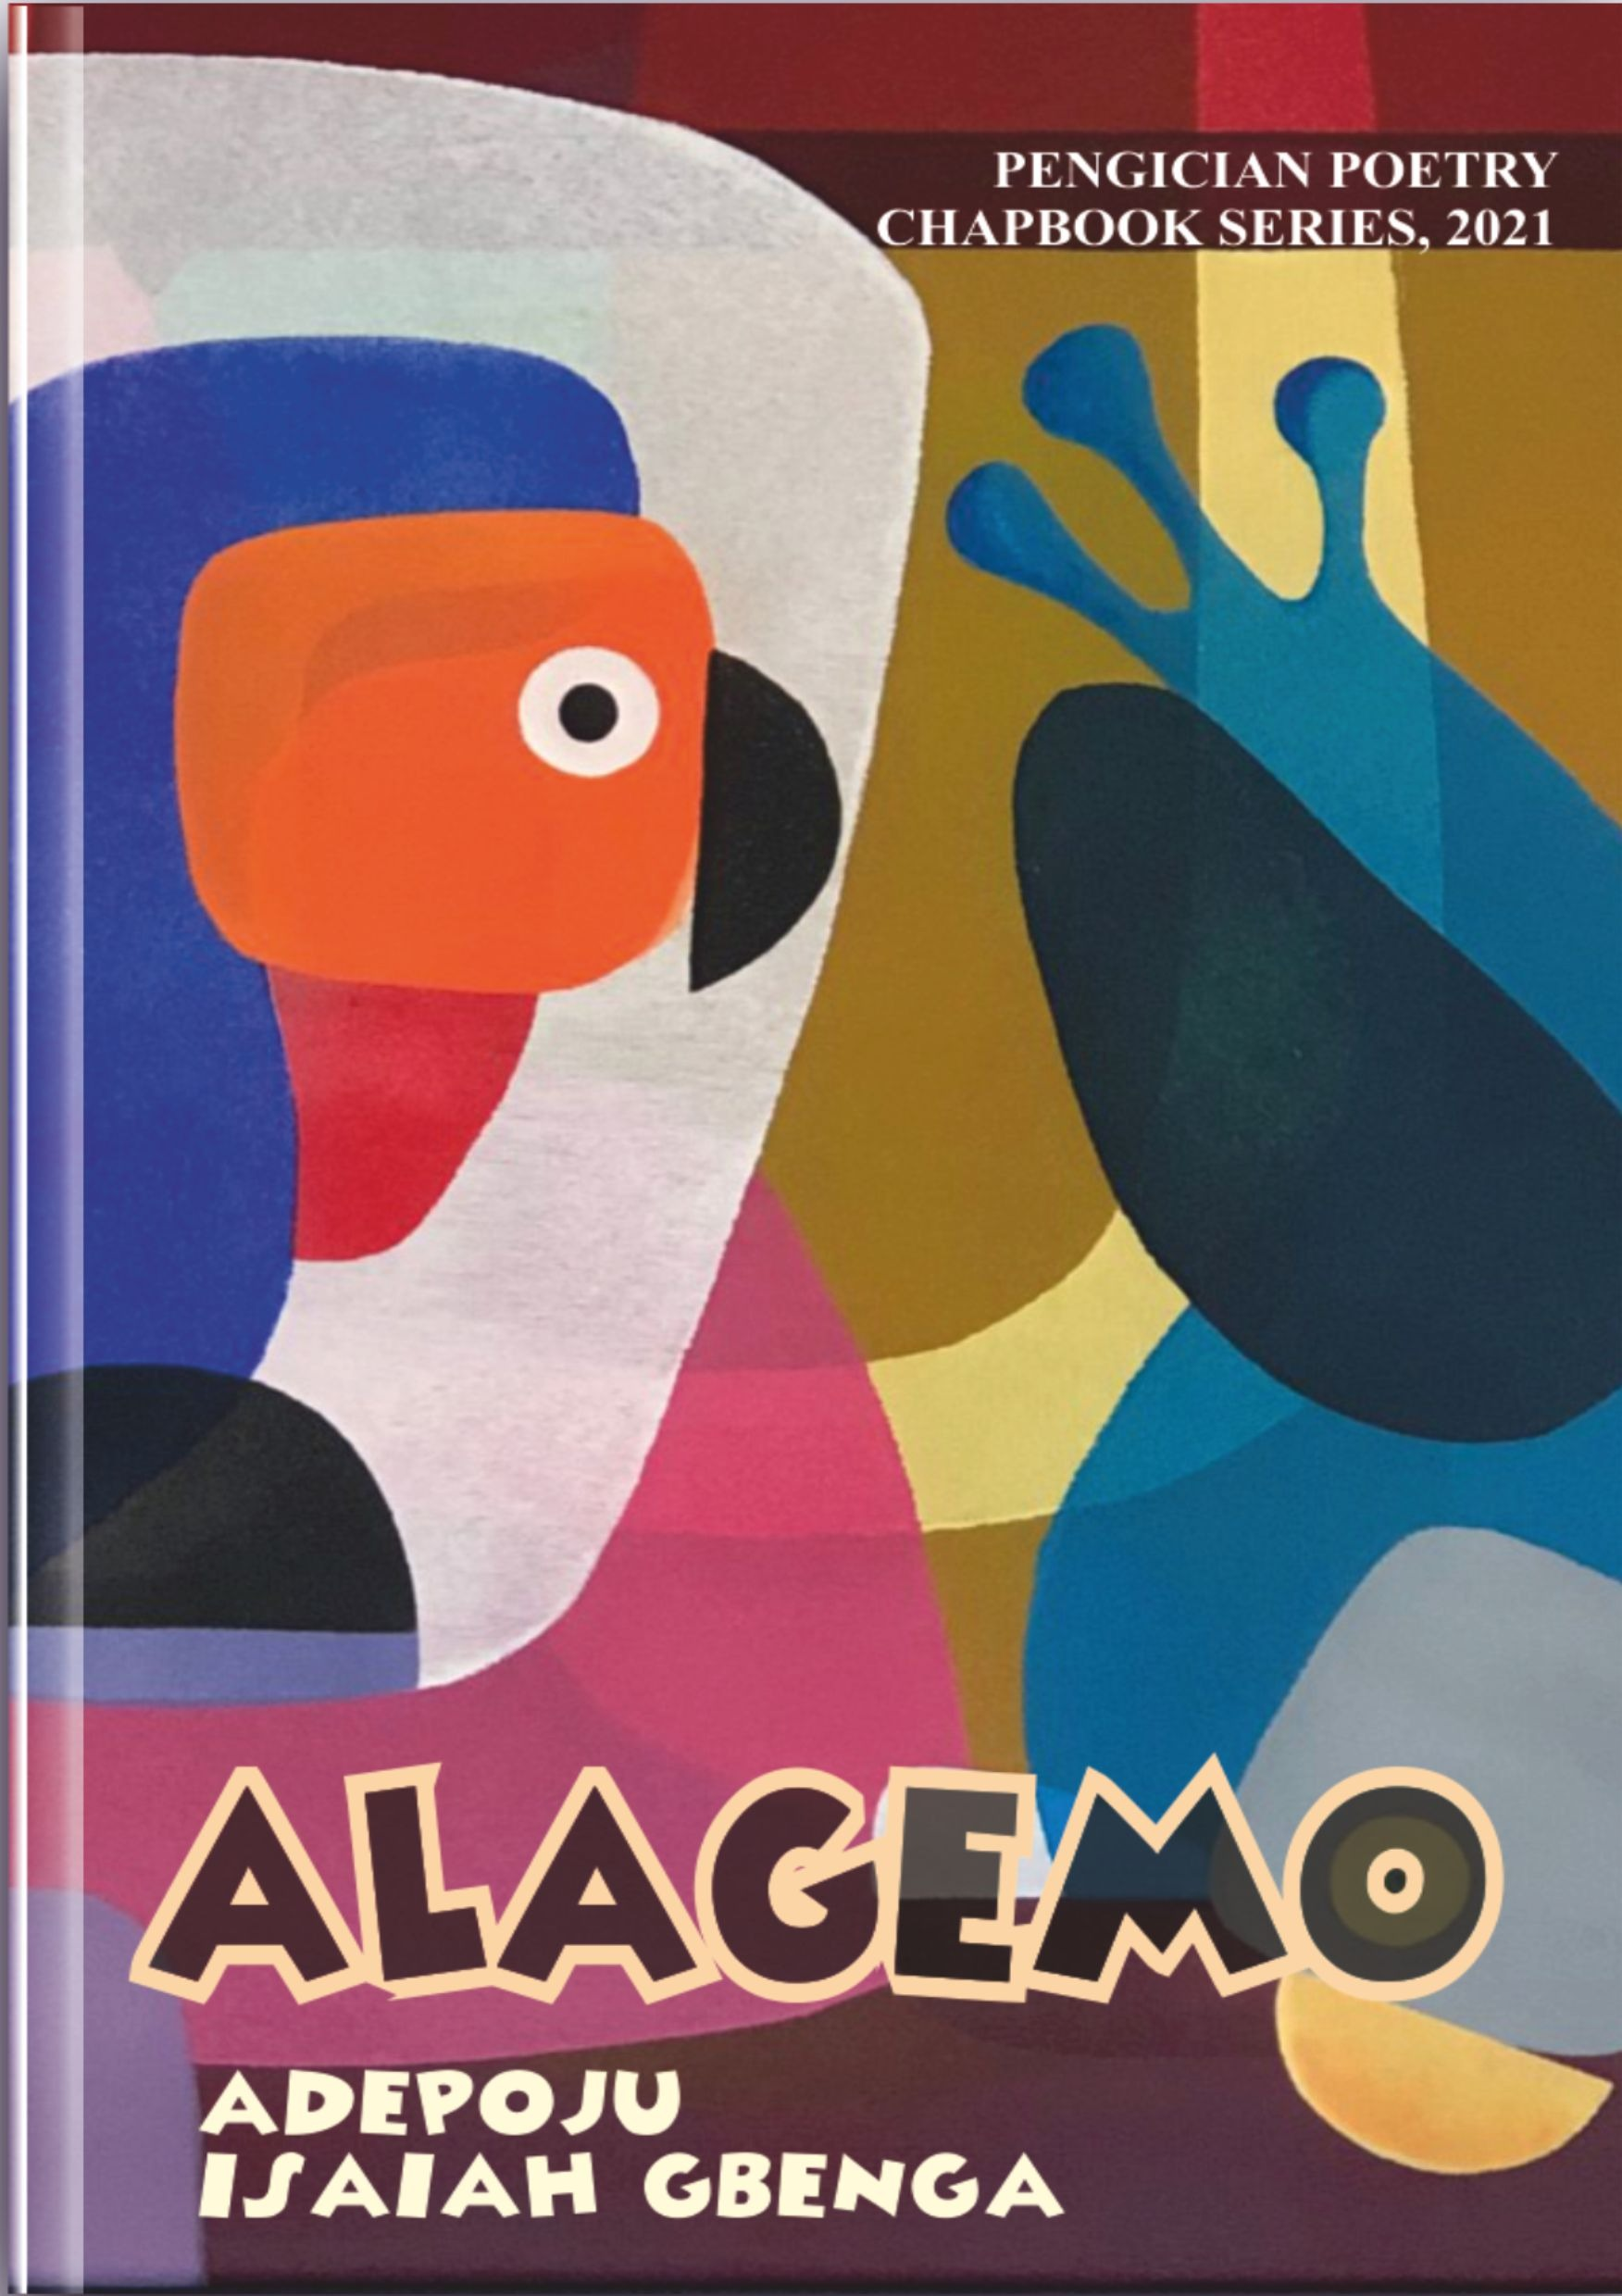 Alagemo, a collection of poems